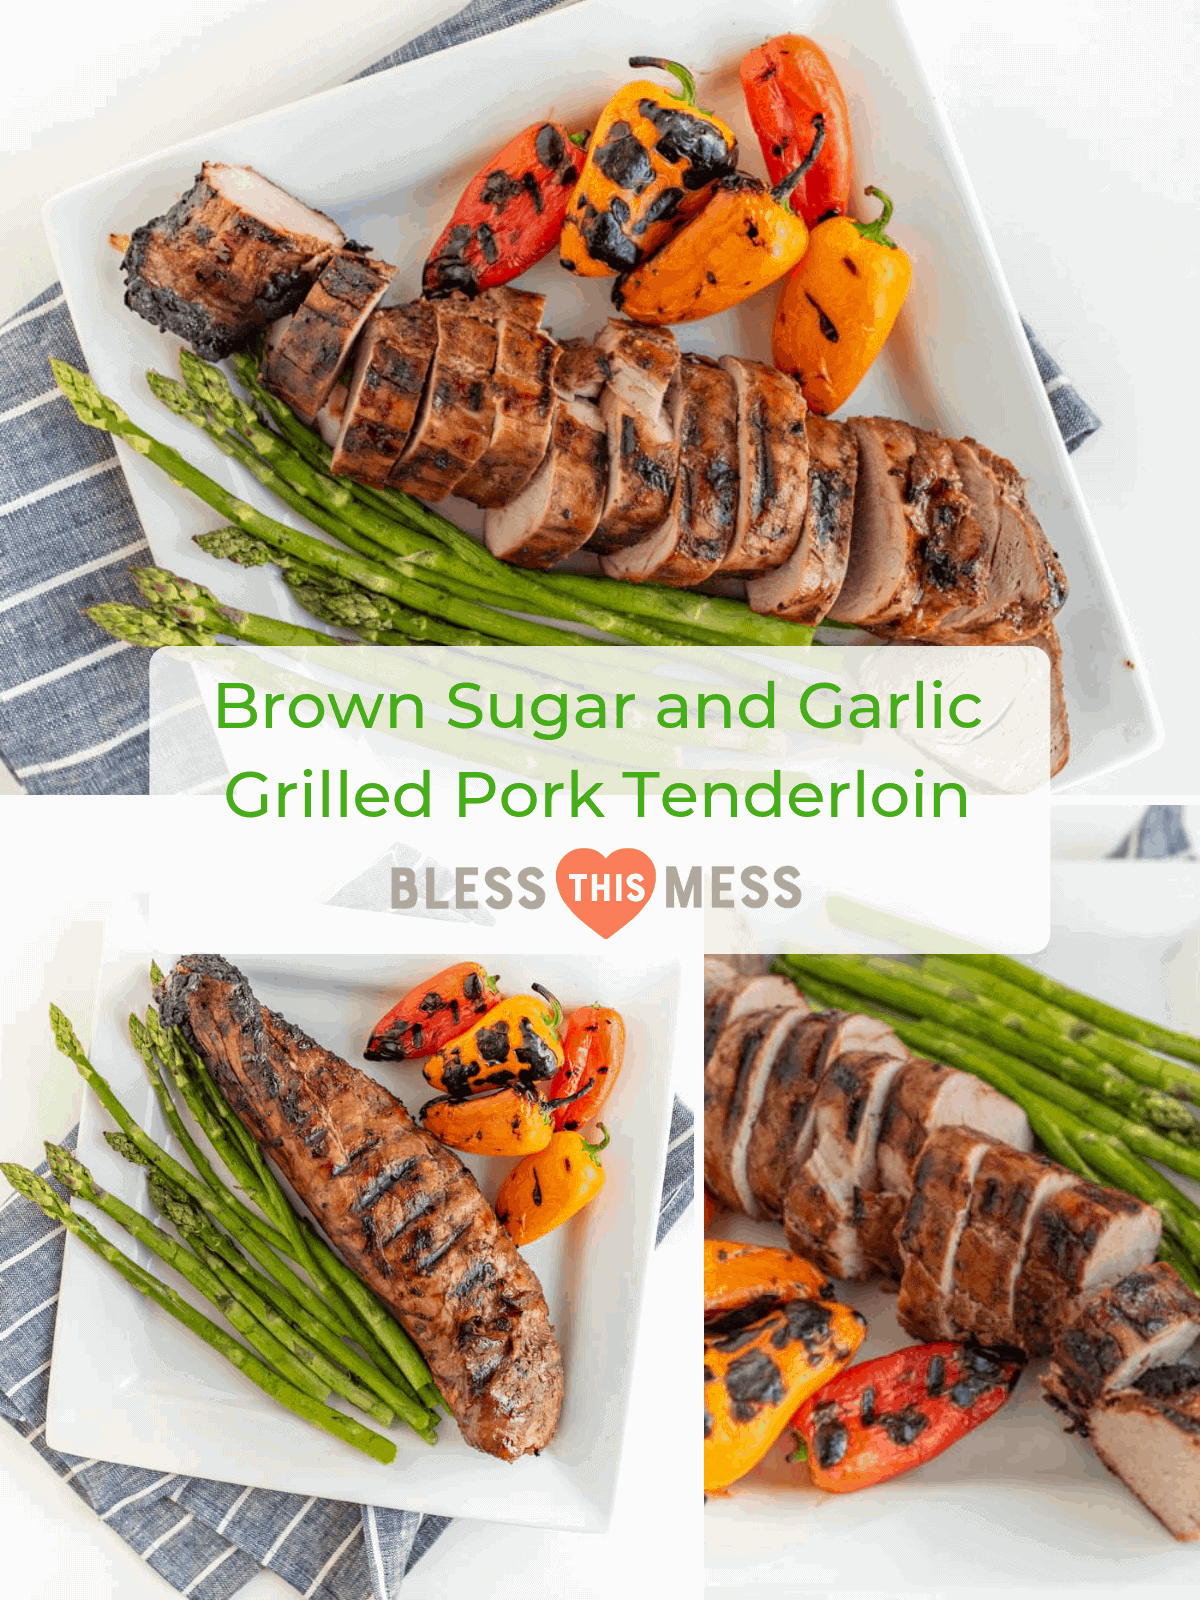 Brown Sugar and Garlic Grilled Pork Tenderloin is robust and smoky with a nice sweet-to-savory ratio. Fire up the grill because this is your new go-to summertime barbecue meat. #grilling #porktenderloin #porkrecipes